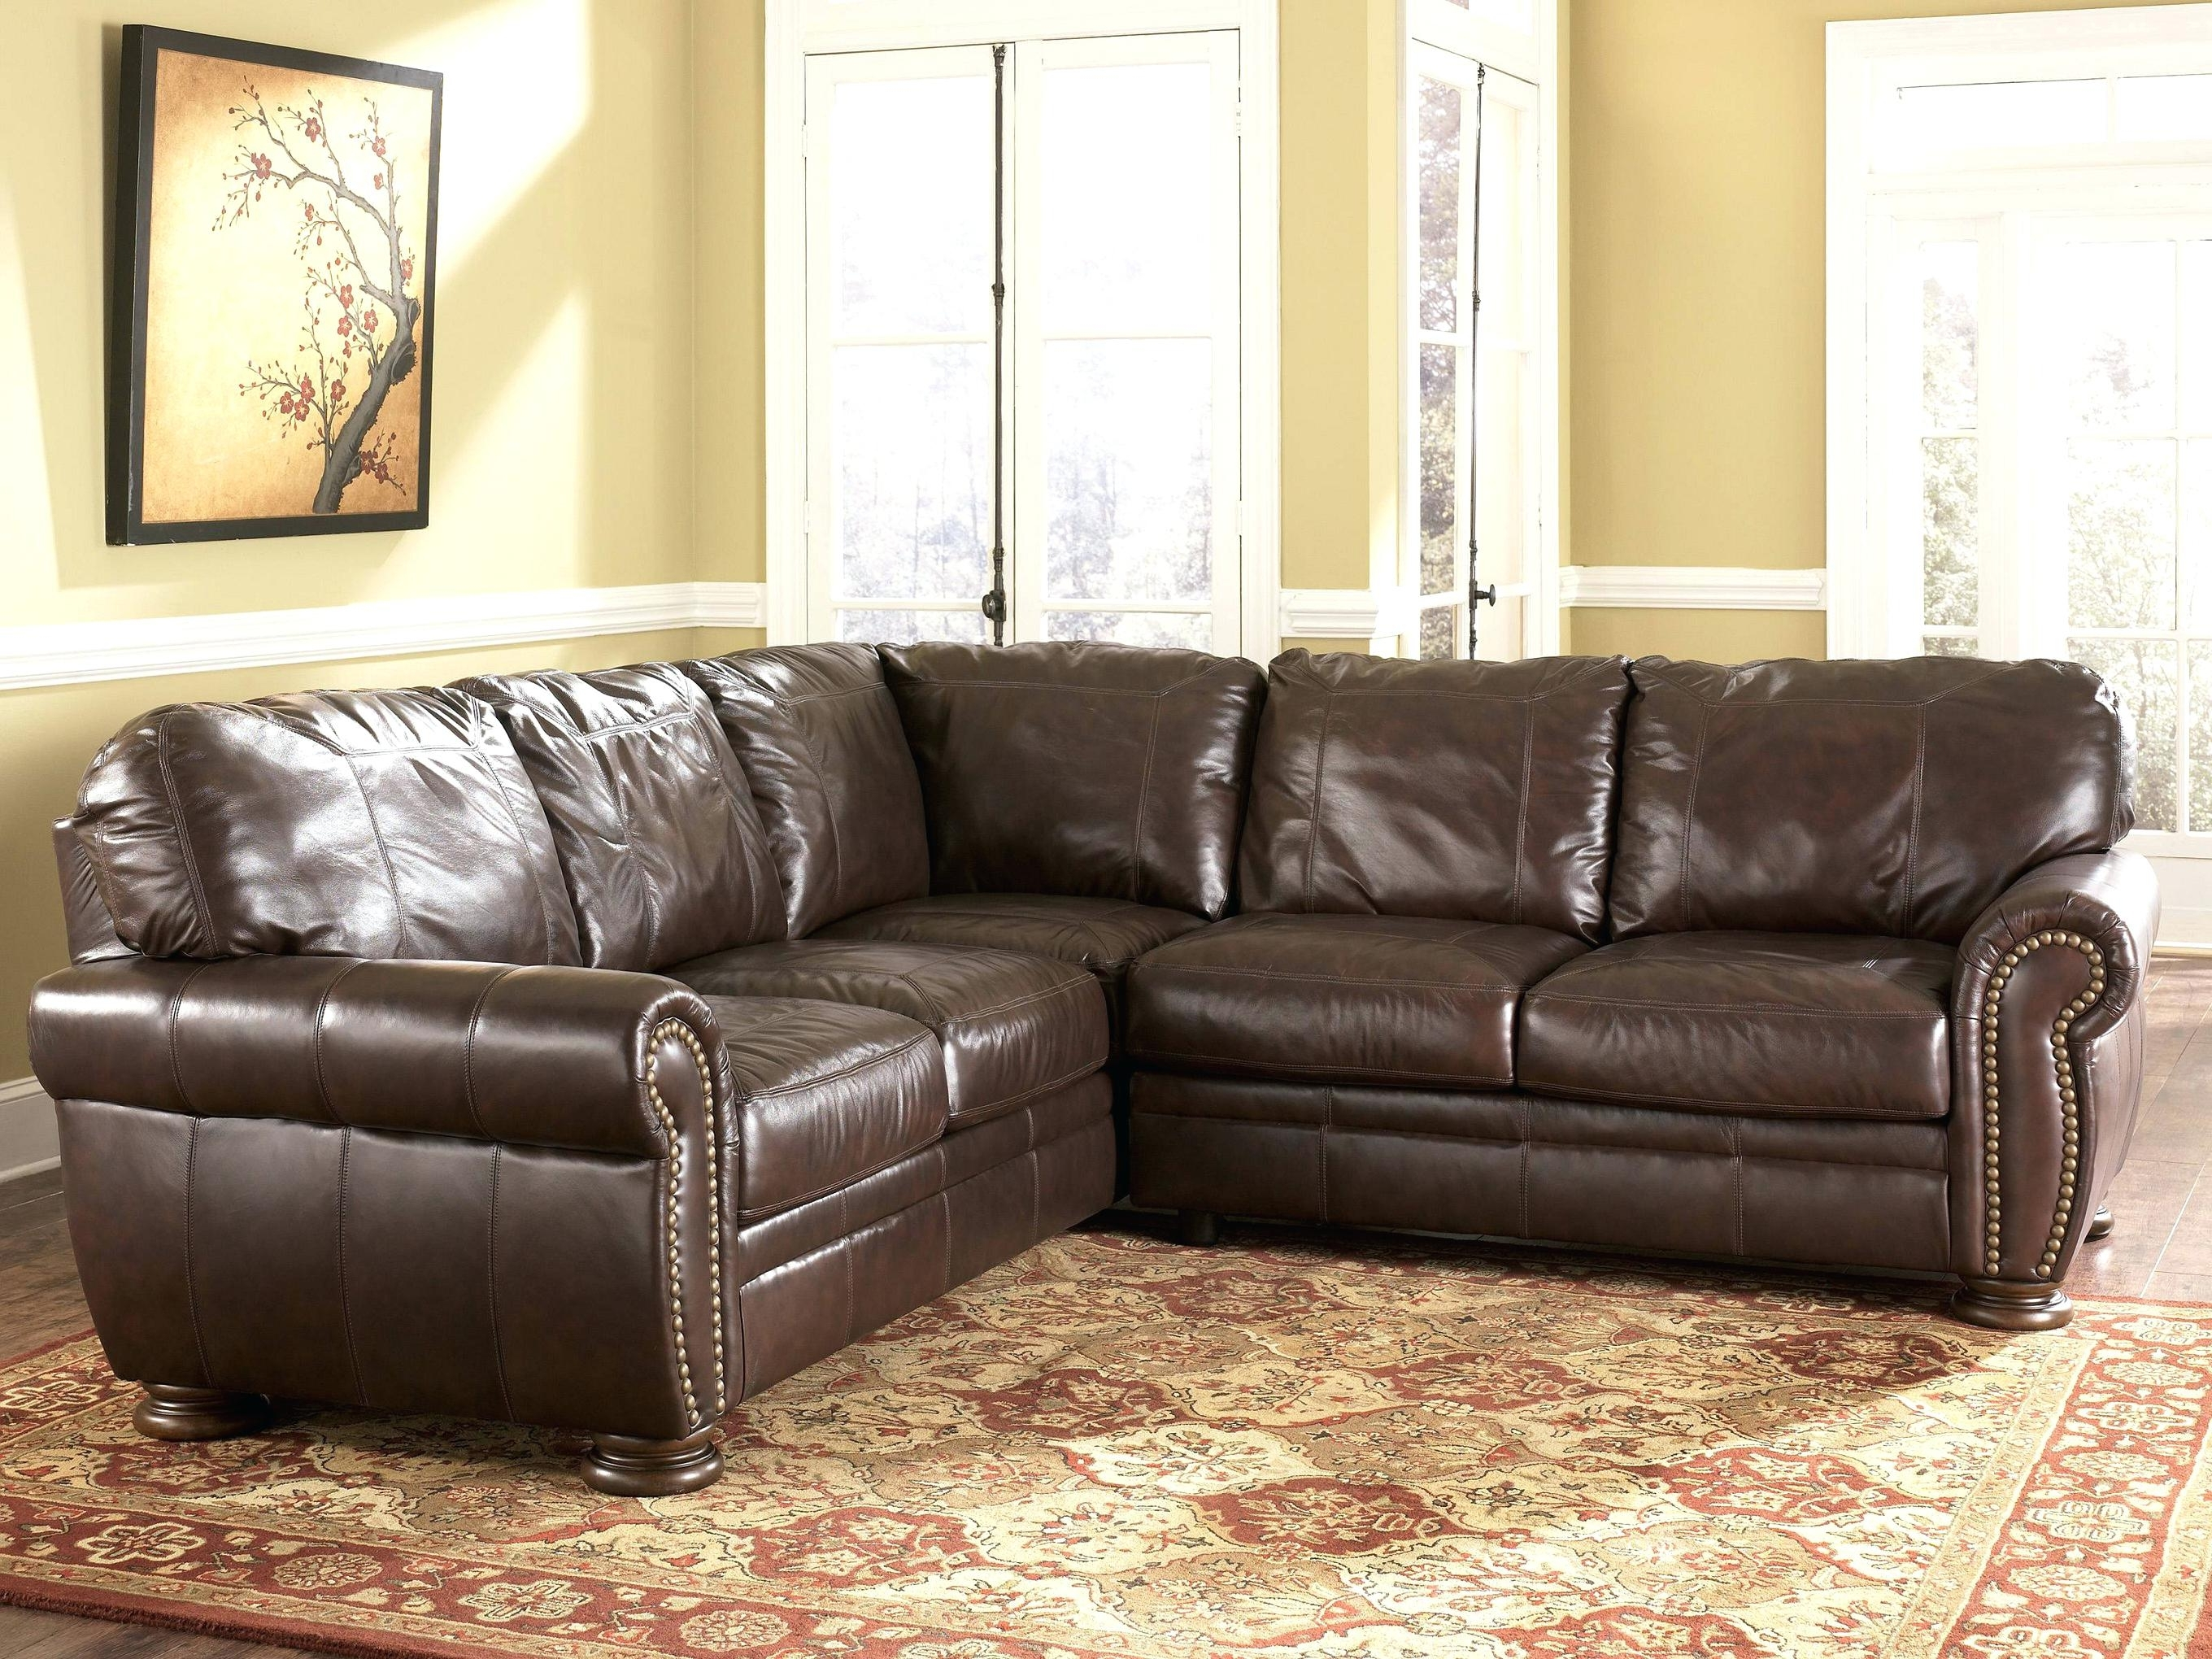 Used Sectional Sofas Intended For Most Recent Discount Sofa Sectionals Cheap Used Sectional Sofas For Sale Black (View 11 of 15)